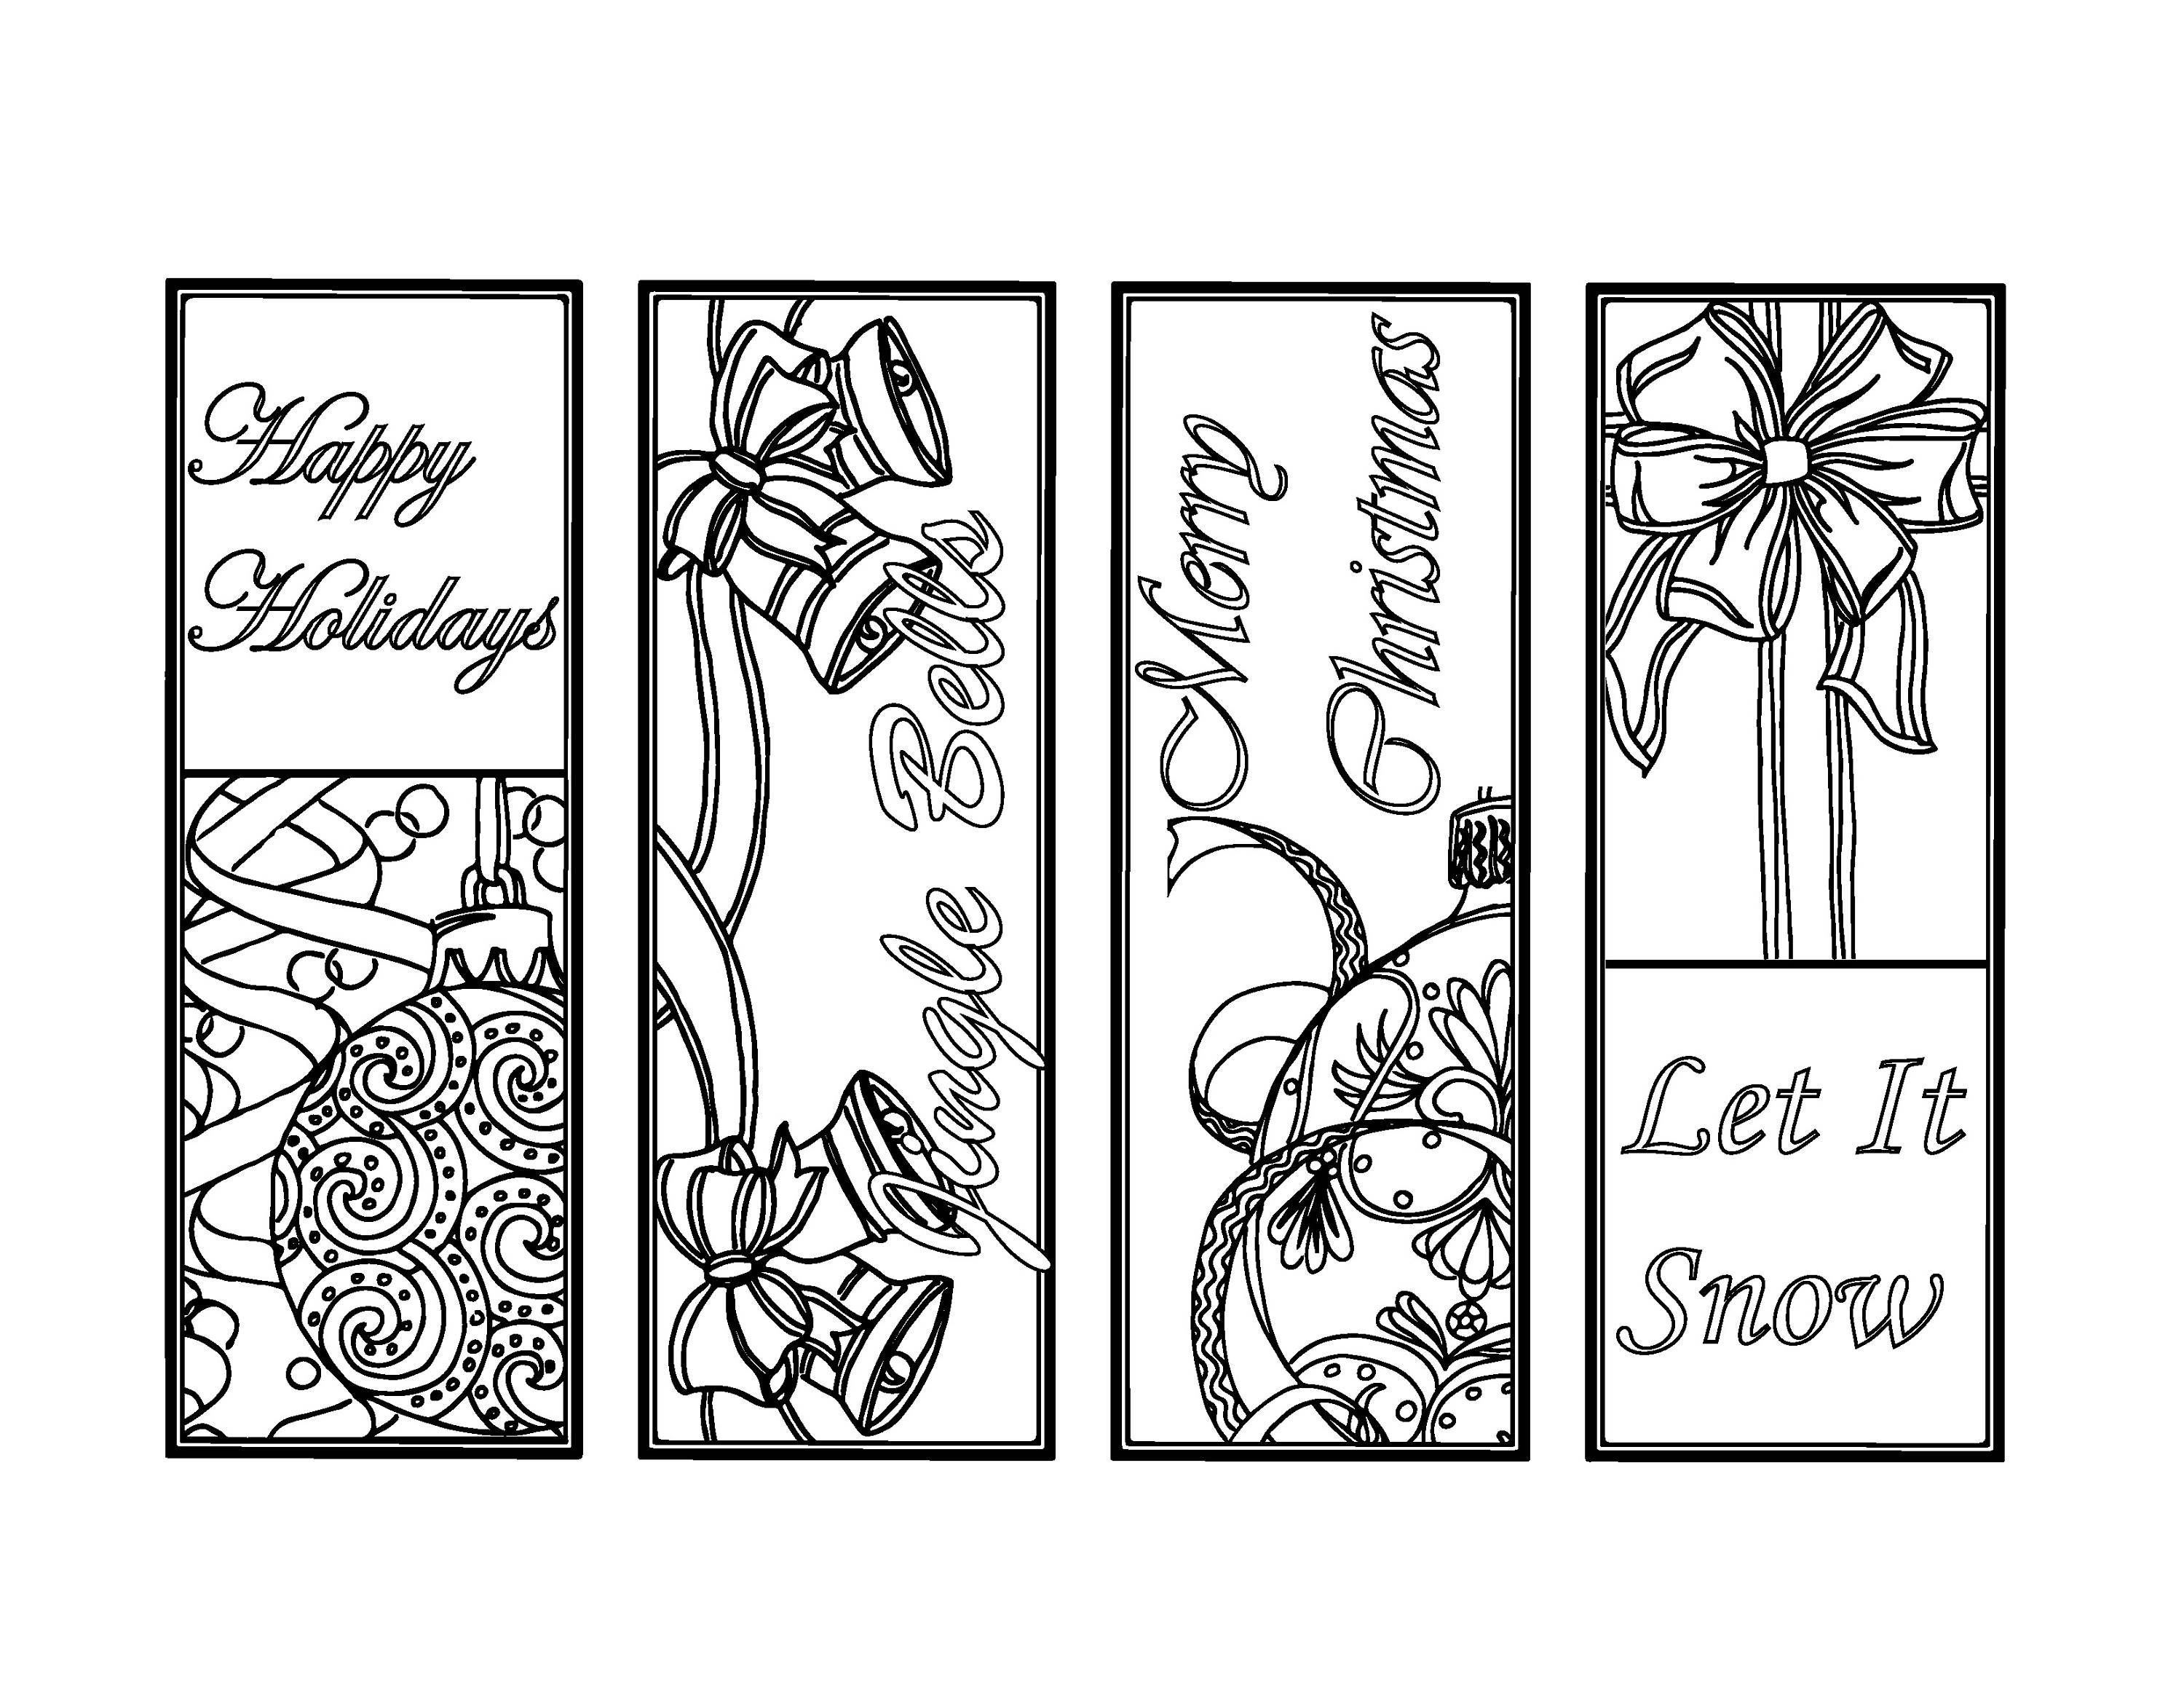 Christmas Coloring Pages Mistletoe Christmas Bookmarks To Color - Free Printable Christmas Bookmarks To Color